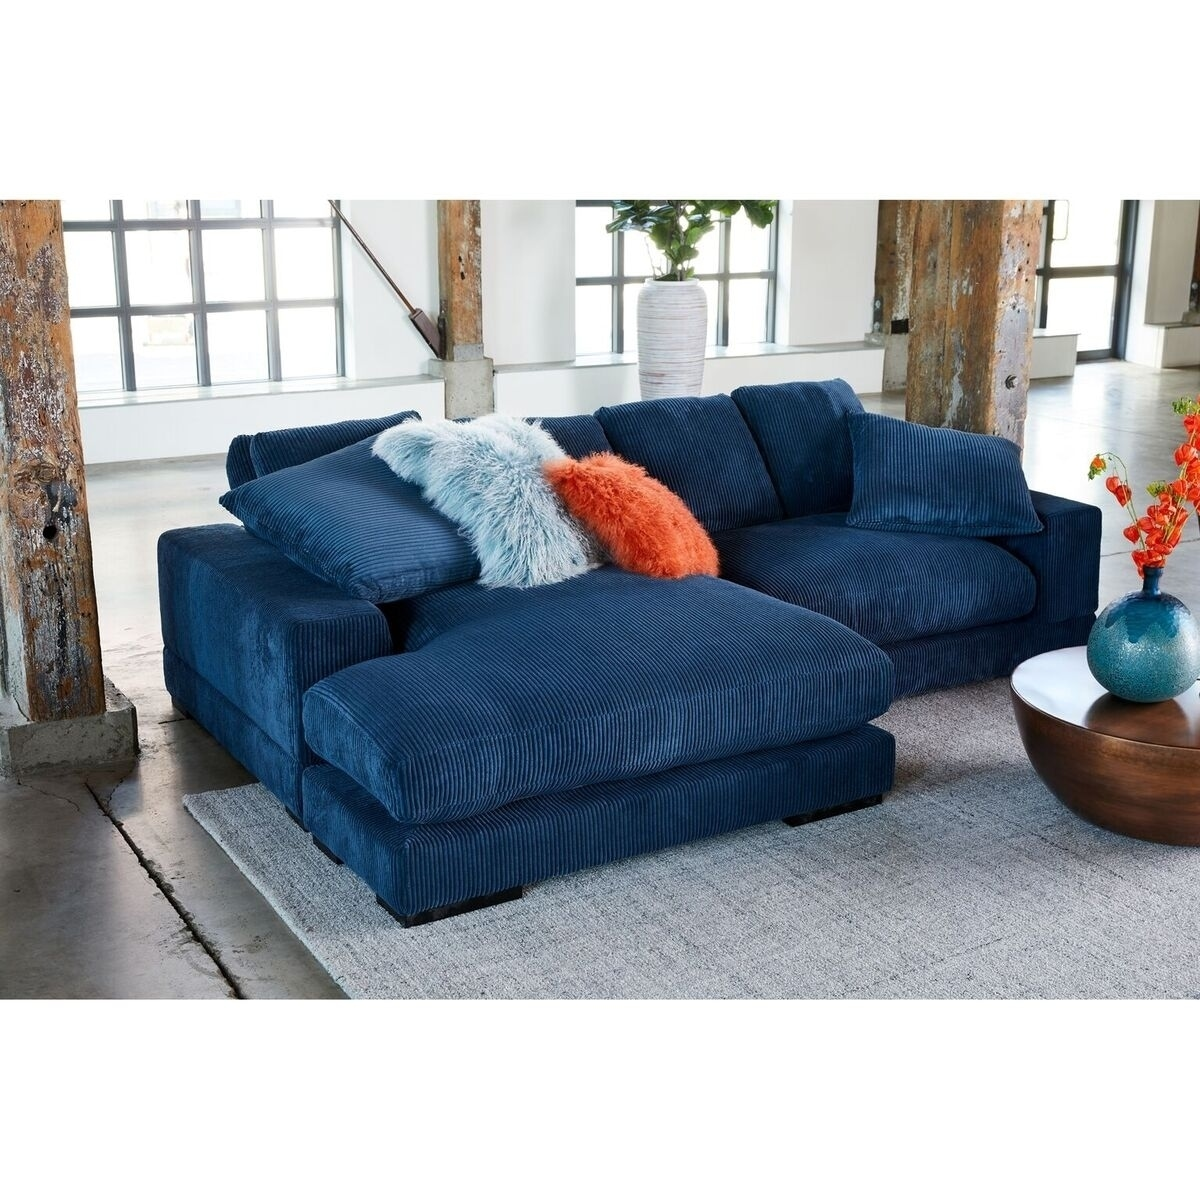 Outstanding Aurelle Home Polk Blue Sectional Sofa Caraccident5 Cool Chair Designs And Ideas Caraccident5Info